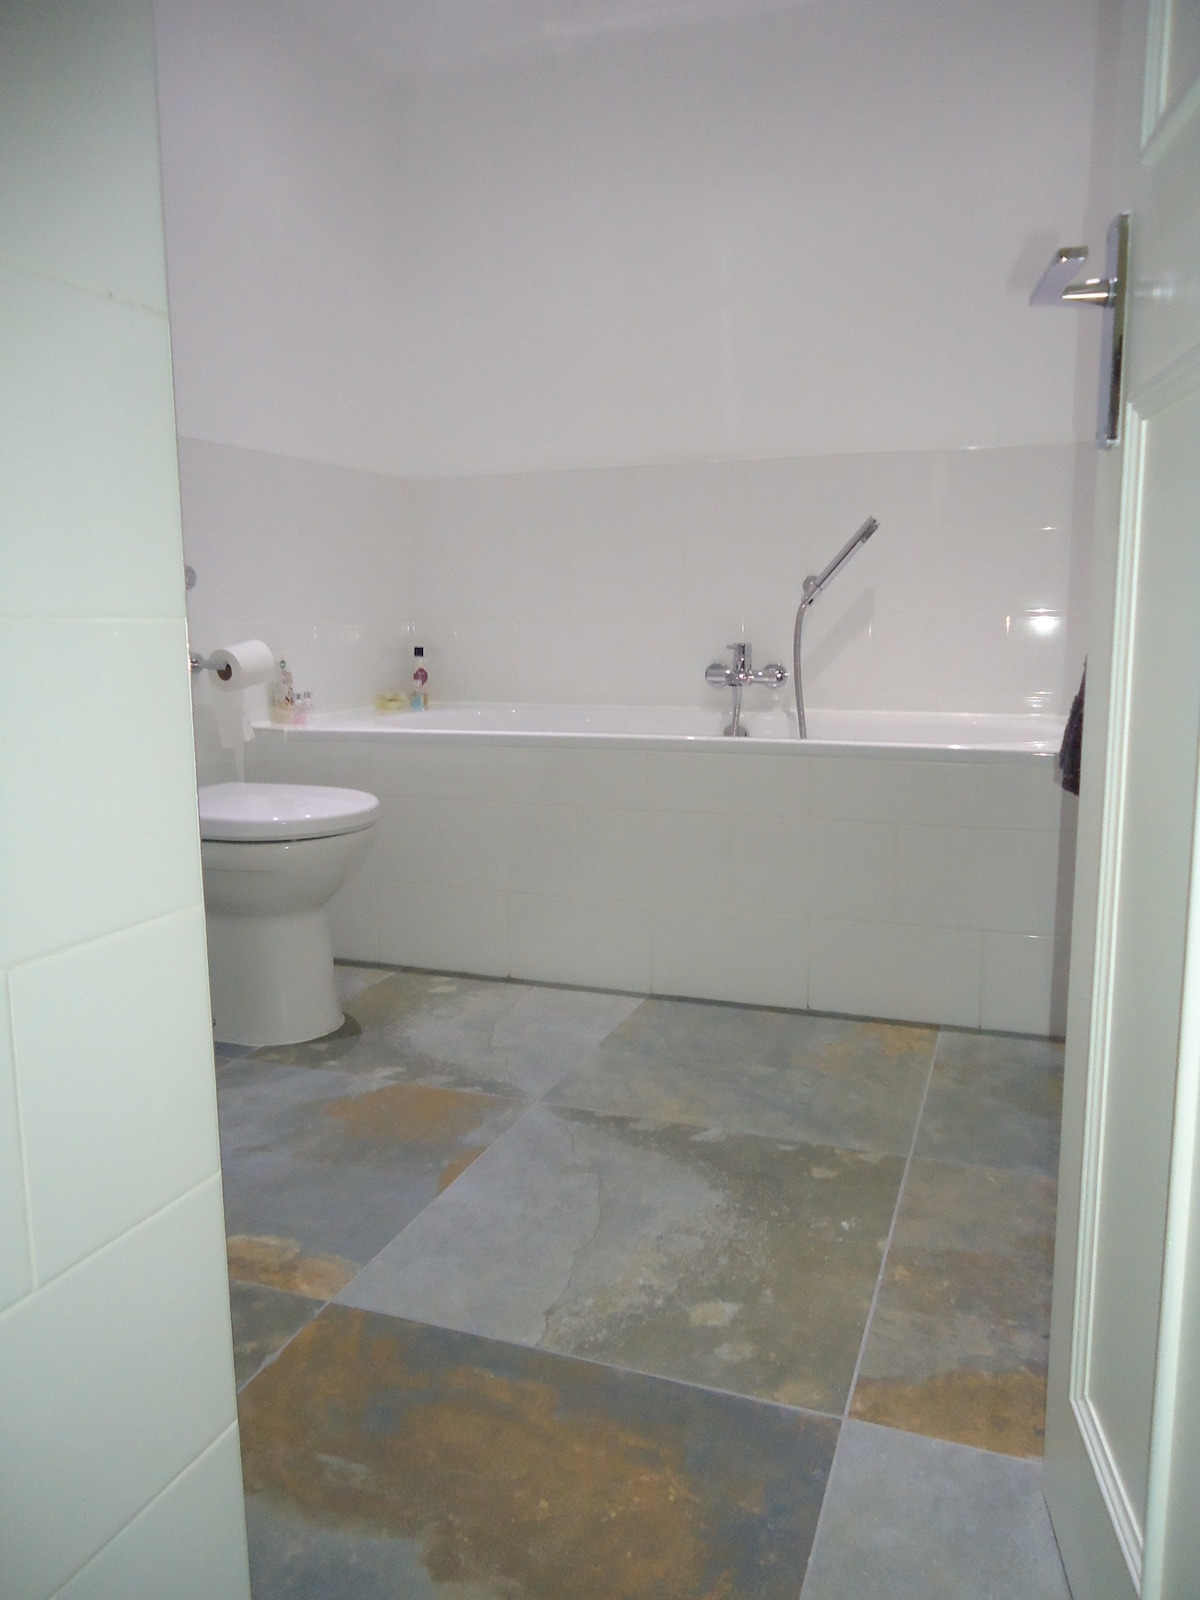 Luxury ensuite with huge bath, underfloor central heating, heated towel rail and even a couple of comfy dressing gowns!